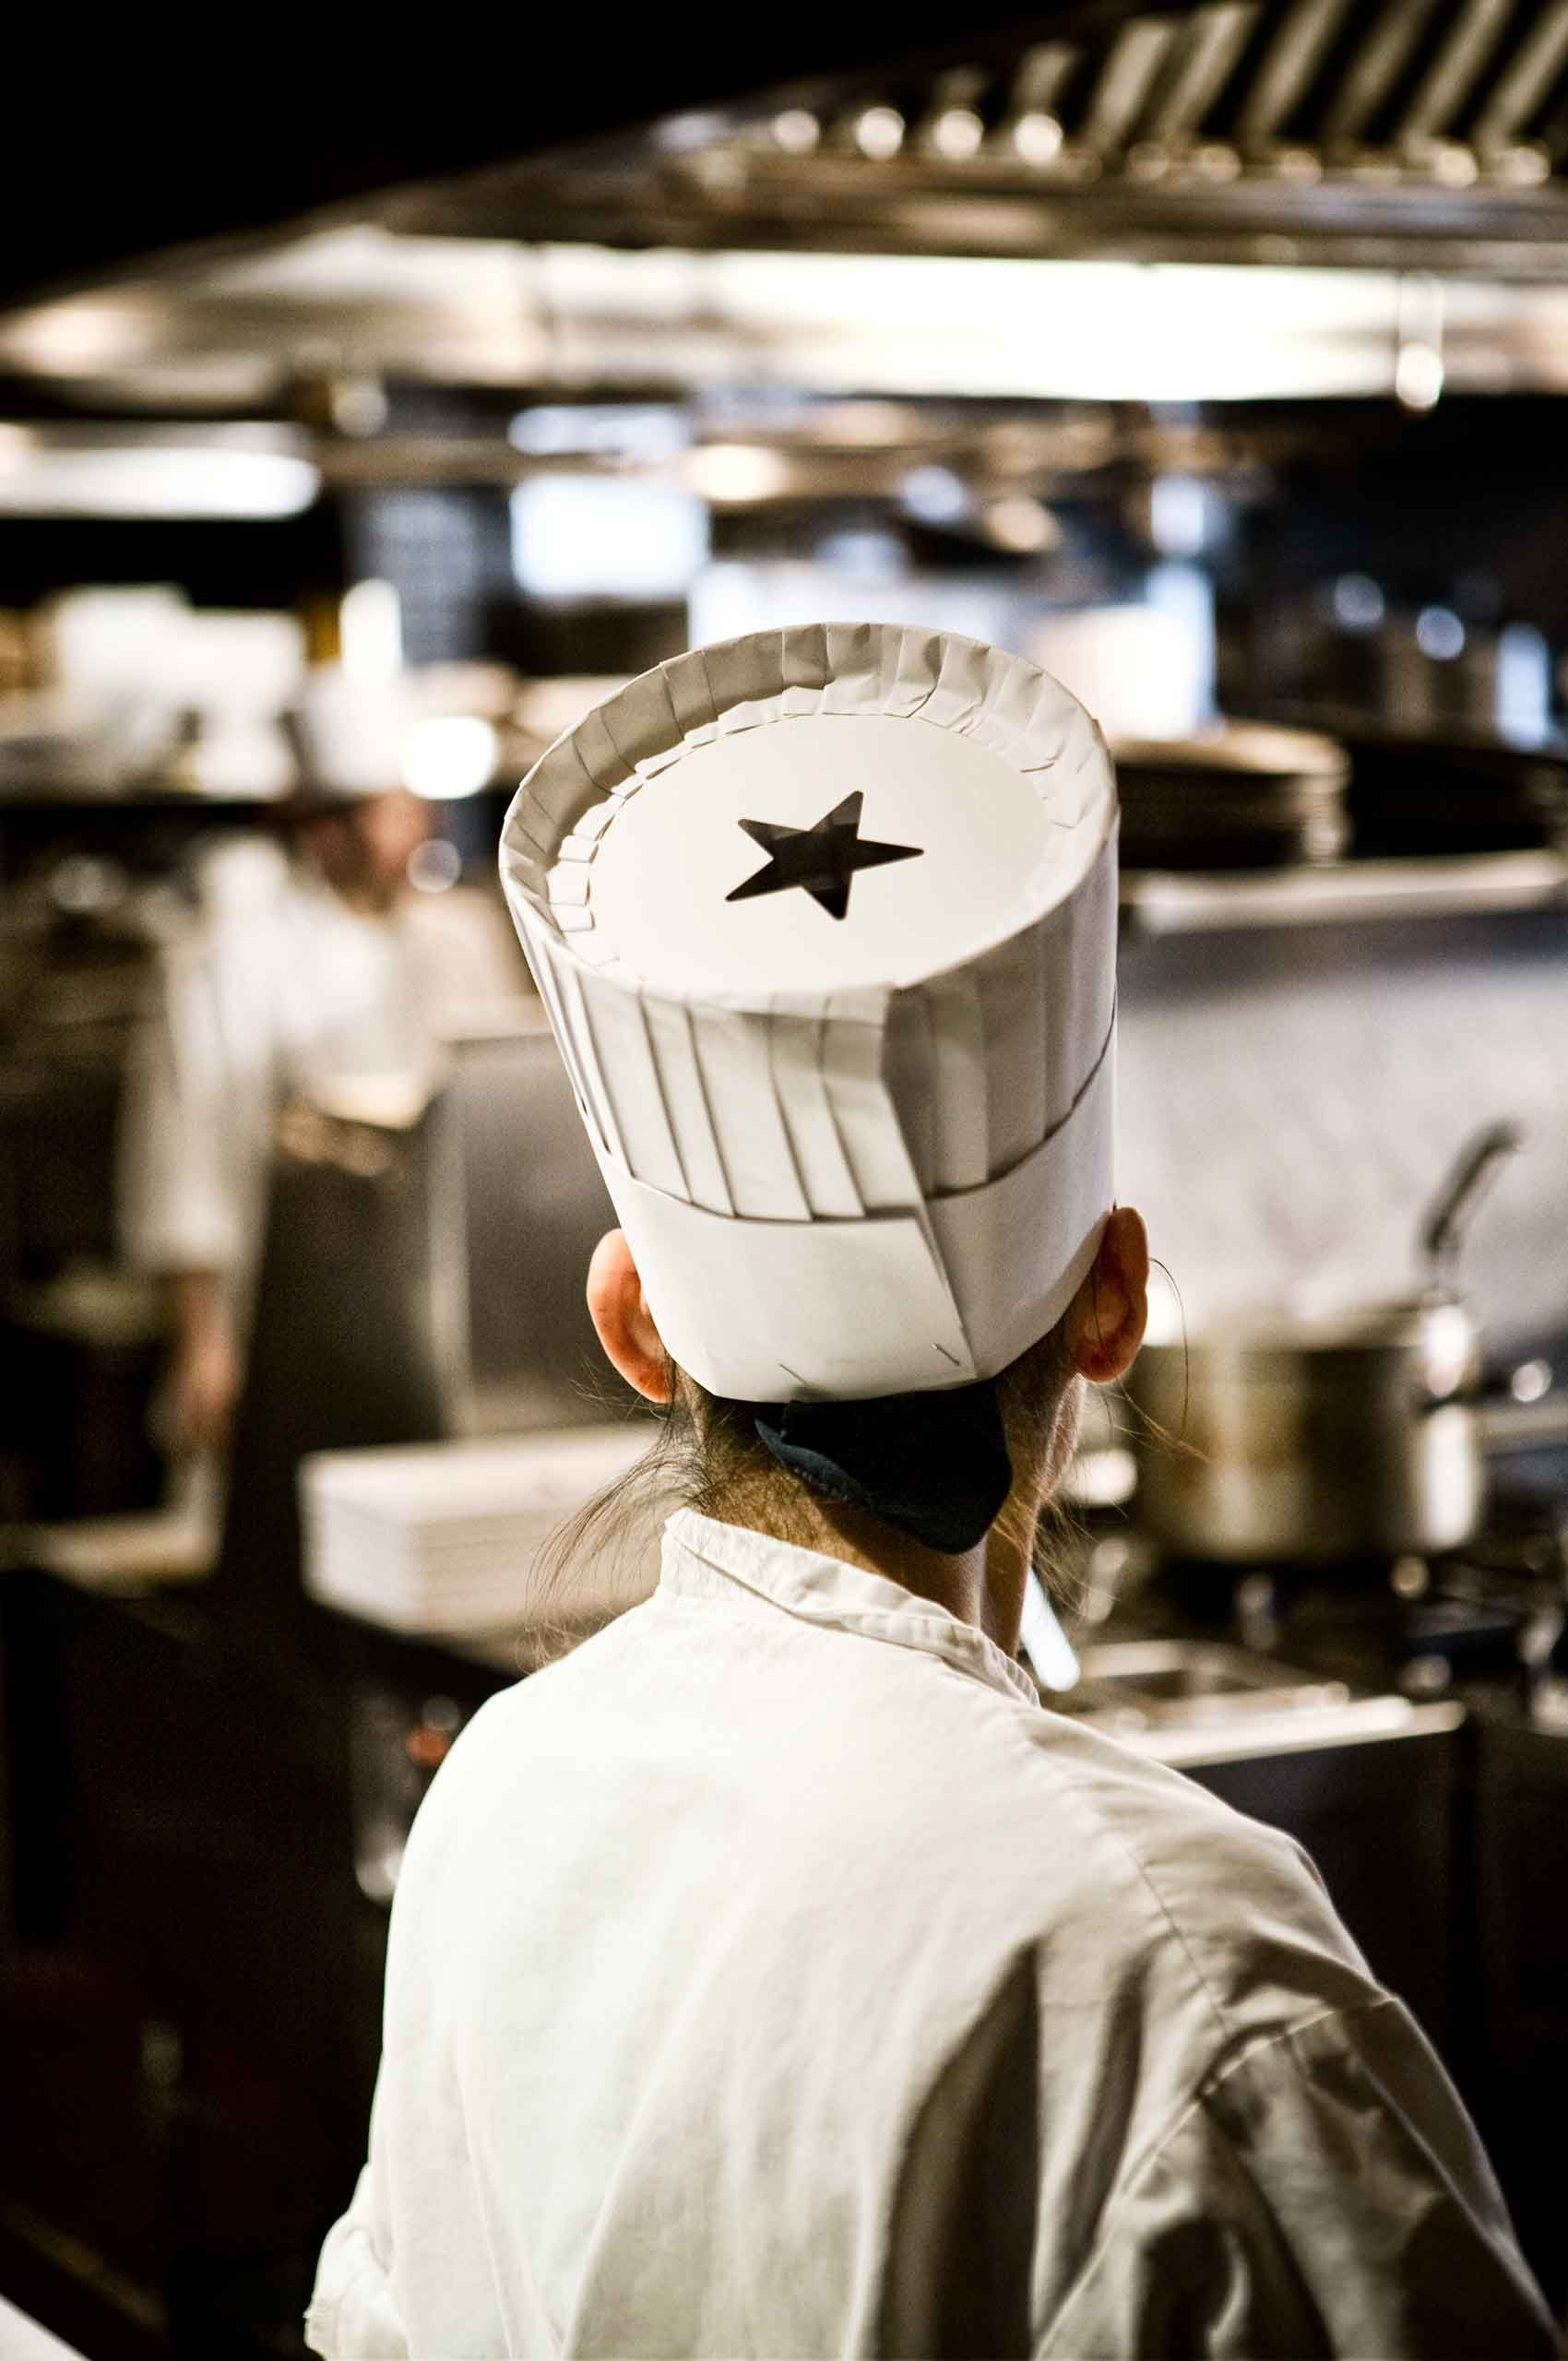 Chinagrill-Chef-with-chefhat-branded-by-HenrikOlundPhotography.jpg